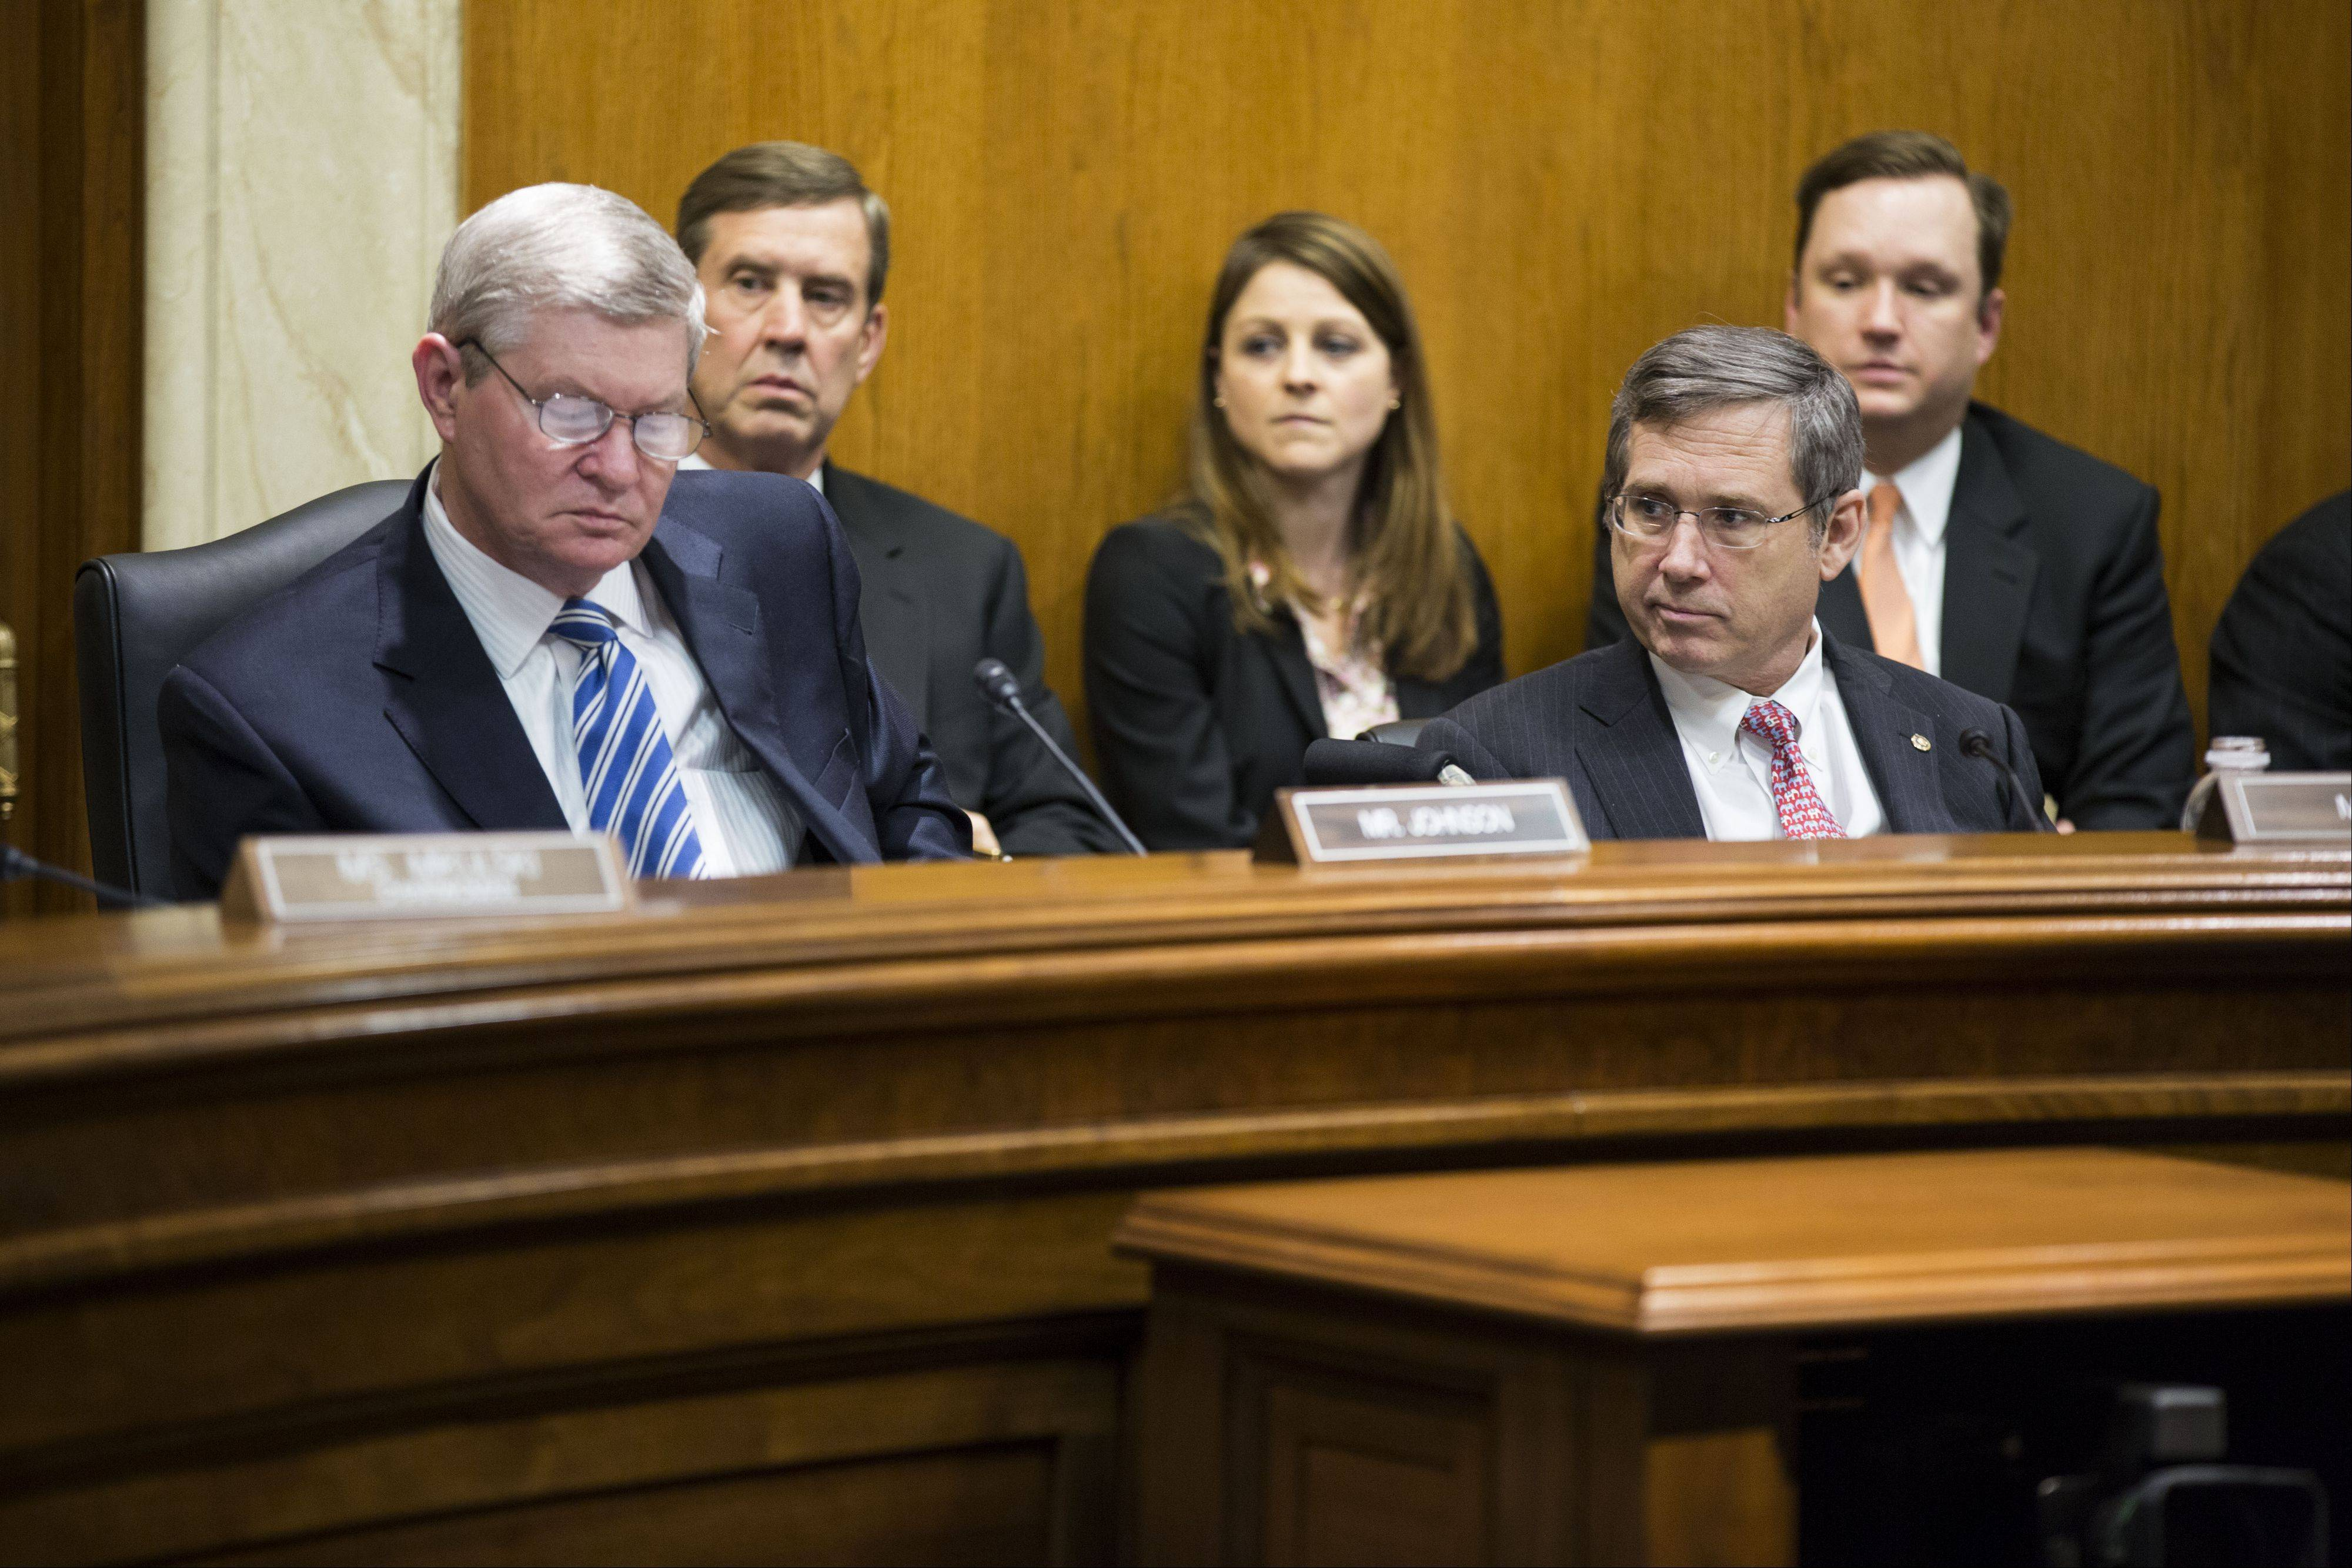 U.S. senators Mark Kirk, a Highland Park Republican at front right, and Tim Johnson, a South Dakota Democrat at left, attend a Military Construction, Veteran Affairs, and Related Agencies Subcommittee hearing in Washington, D.C. Both Senators returned to Congress after suffering strokes.